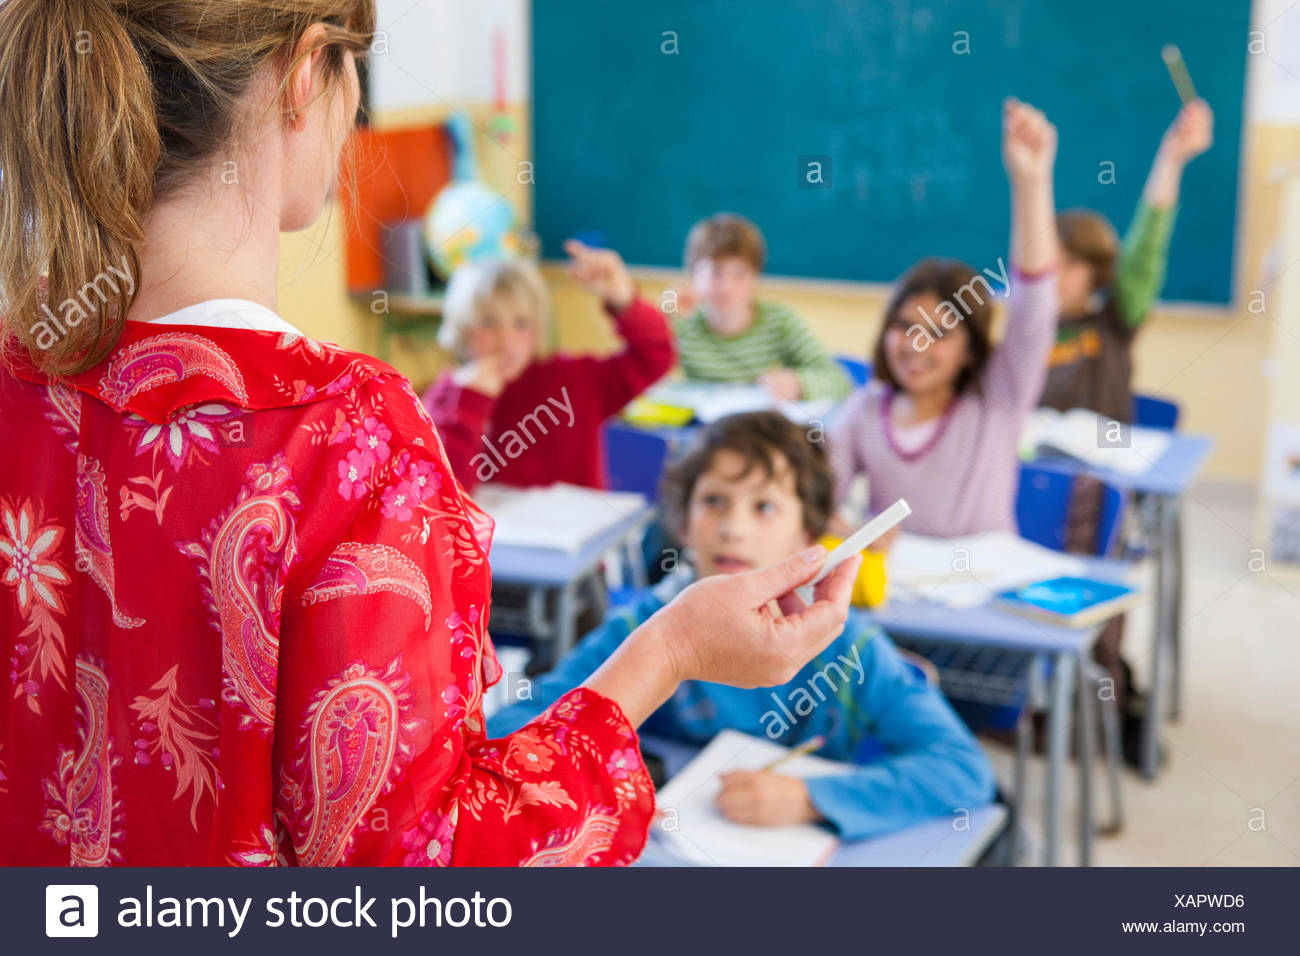 Over the shoulder view of primary school teacher questioning in classroom - Stock Image